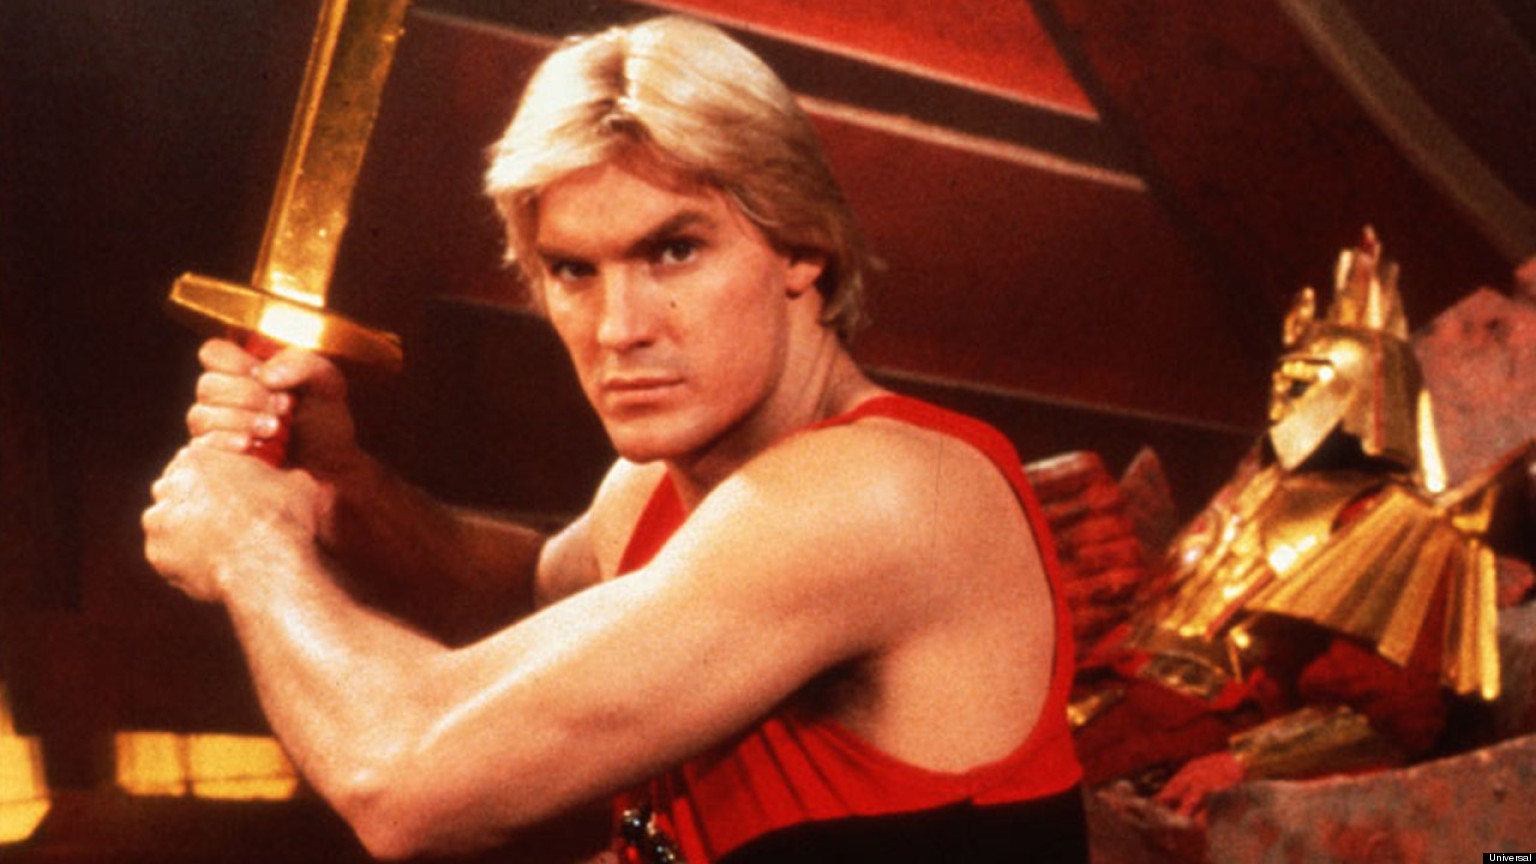 A special screening of 'Flash Gordon' at the North Park Theatre will include a Q&A with star Sam Jones, who also will appear at Nickel City Con.